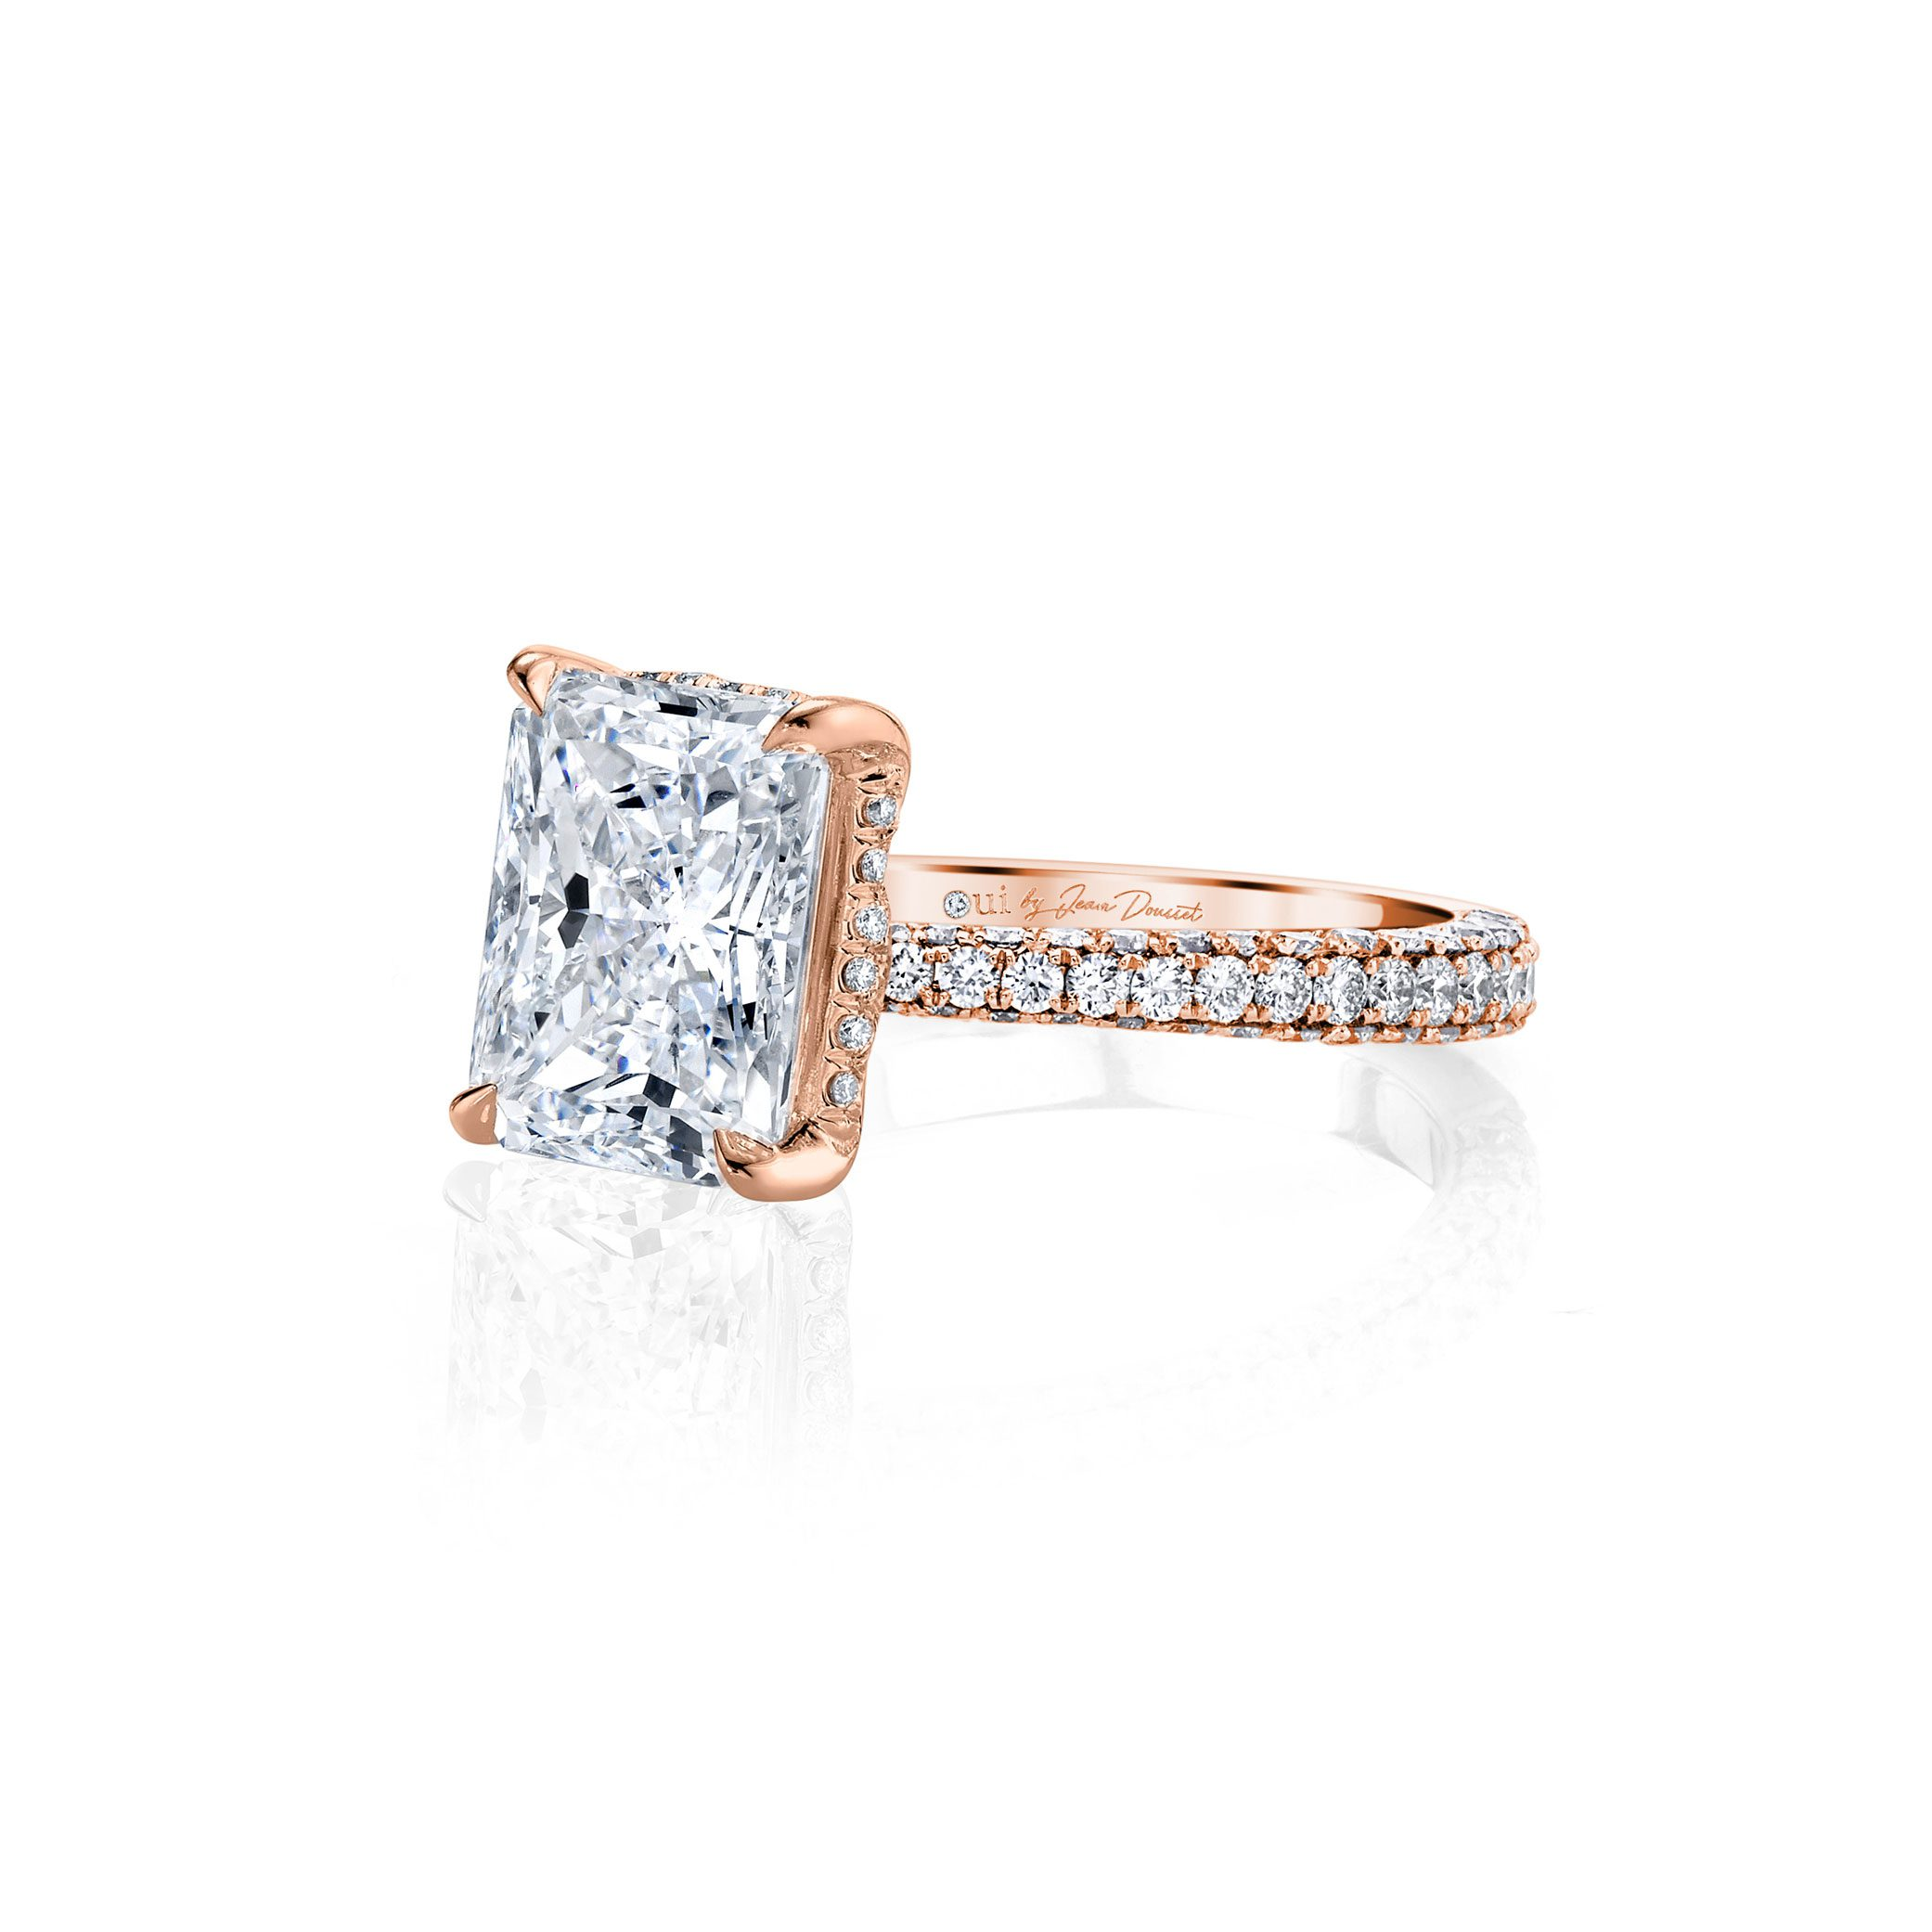 Jacqueline Radiant Cut Lab Grown Diamond Solitaire Engagement Ring Pavé Rose Gold Band from Oui